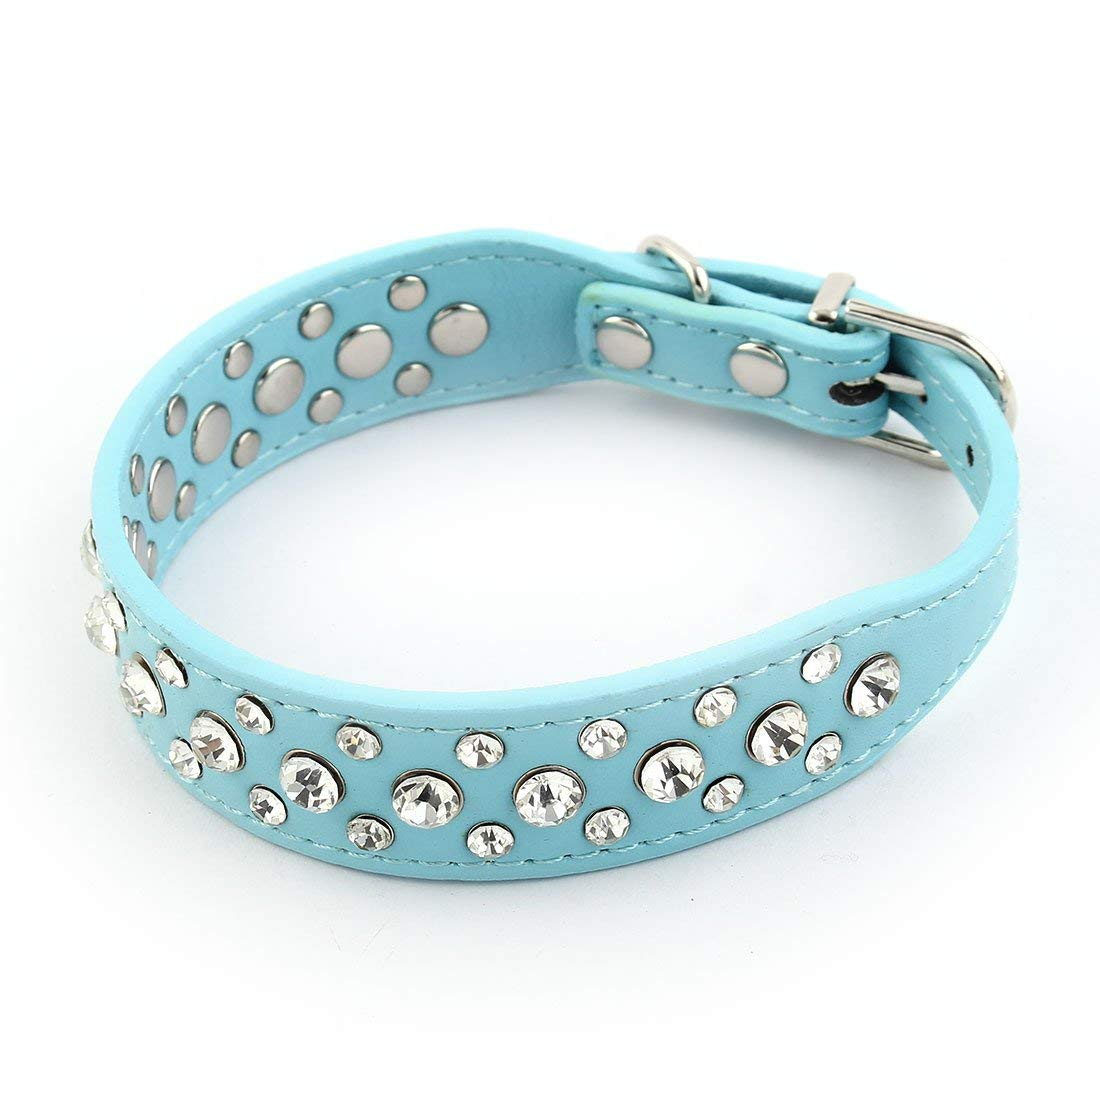 Faux Leather Artificial Rhinestone Ornament Puppy Pet Dog Training Neck Belt Strap Collar S bluee